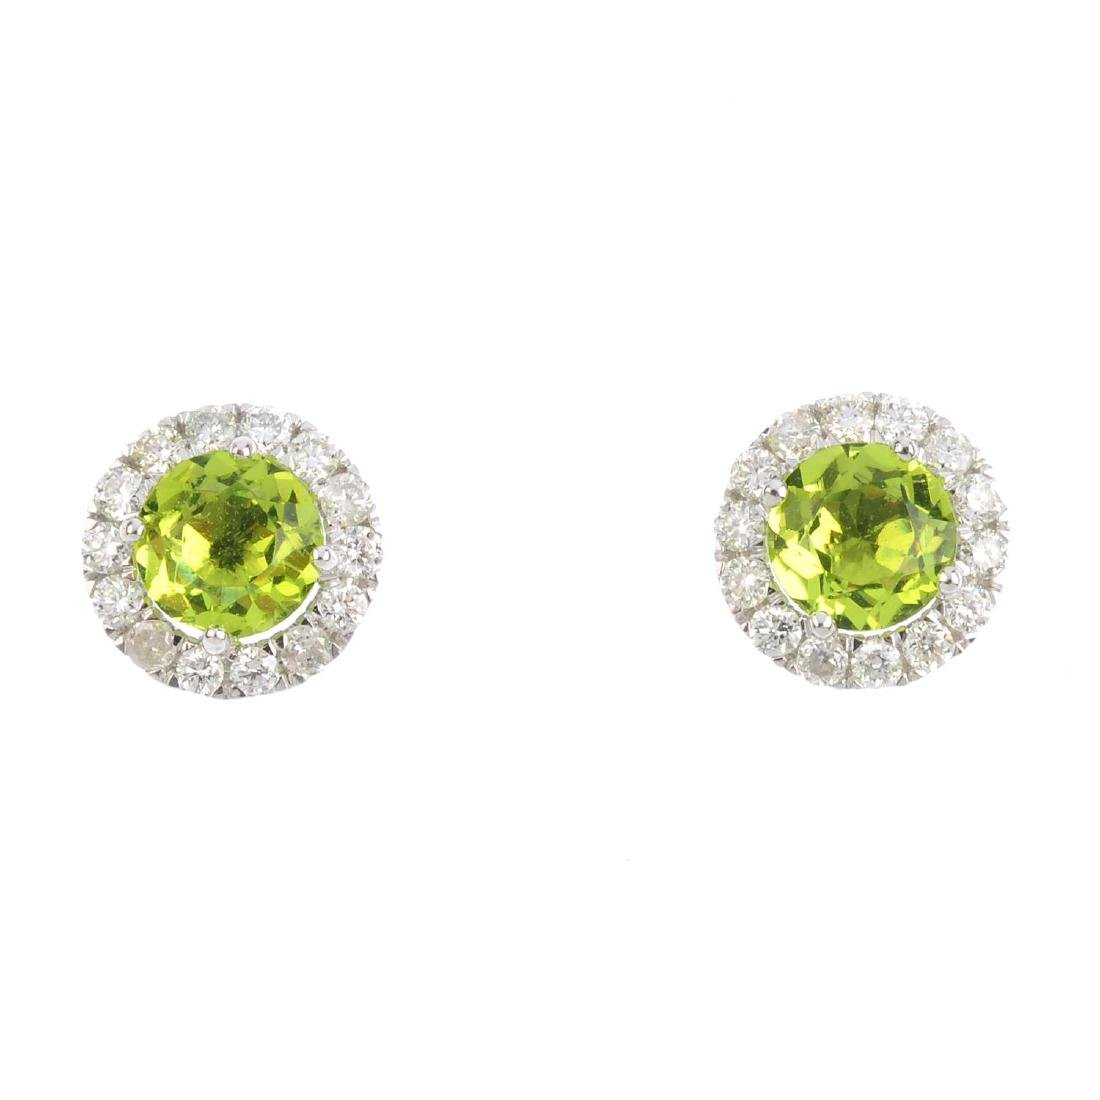 A pair of peridot and diamond cluster earrings. Each